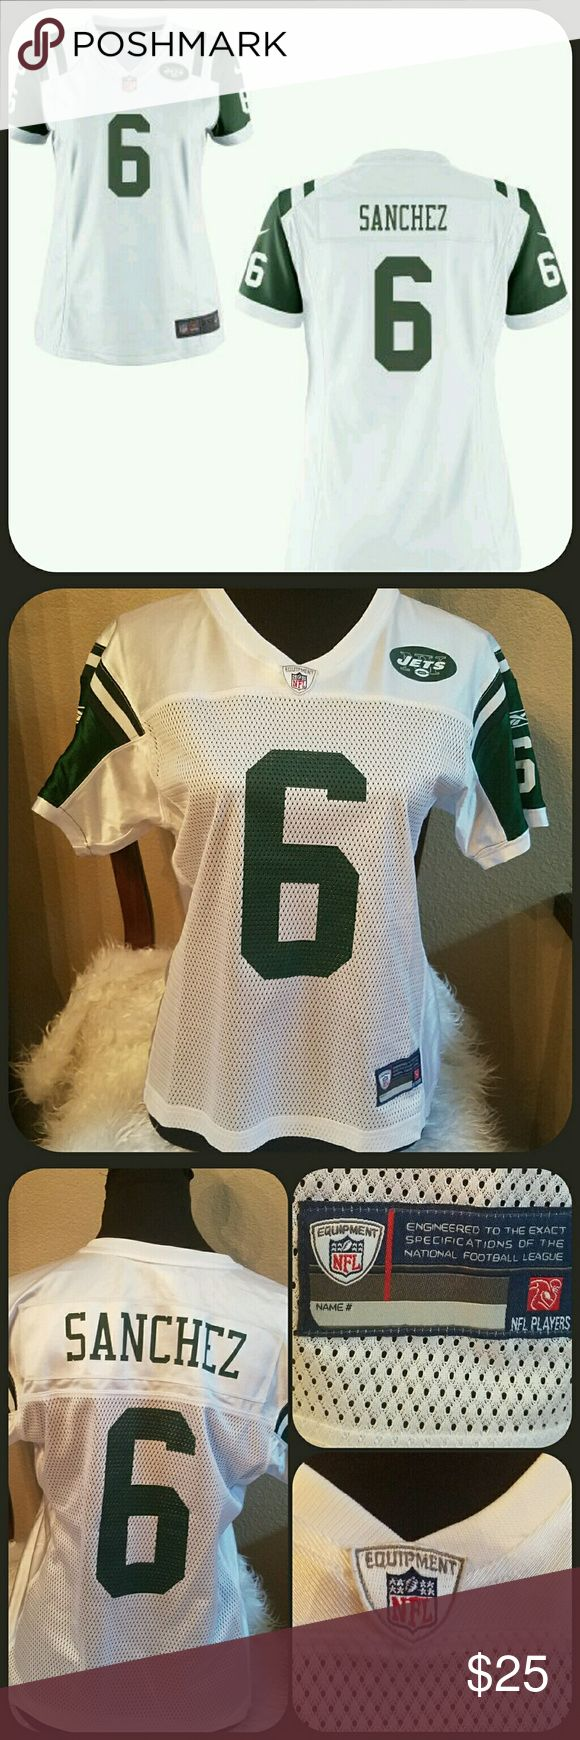 """🆕NFL Womens NY Jets Football Top NWOT NWOT NFL top. #6 Sanchez. Size Medium. From the official NFL store. Measures approximately 24"""" long, armpit to armpit 19"""" across lying flat. Never worn. NFL Equipment  Tops"""